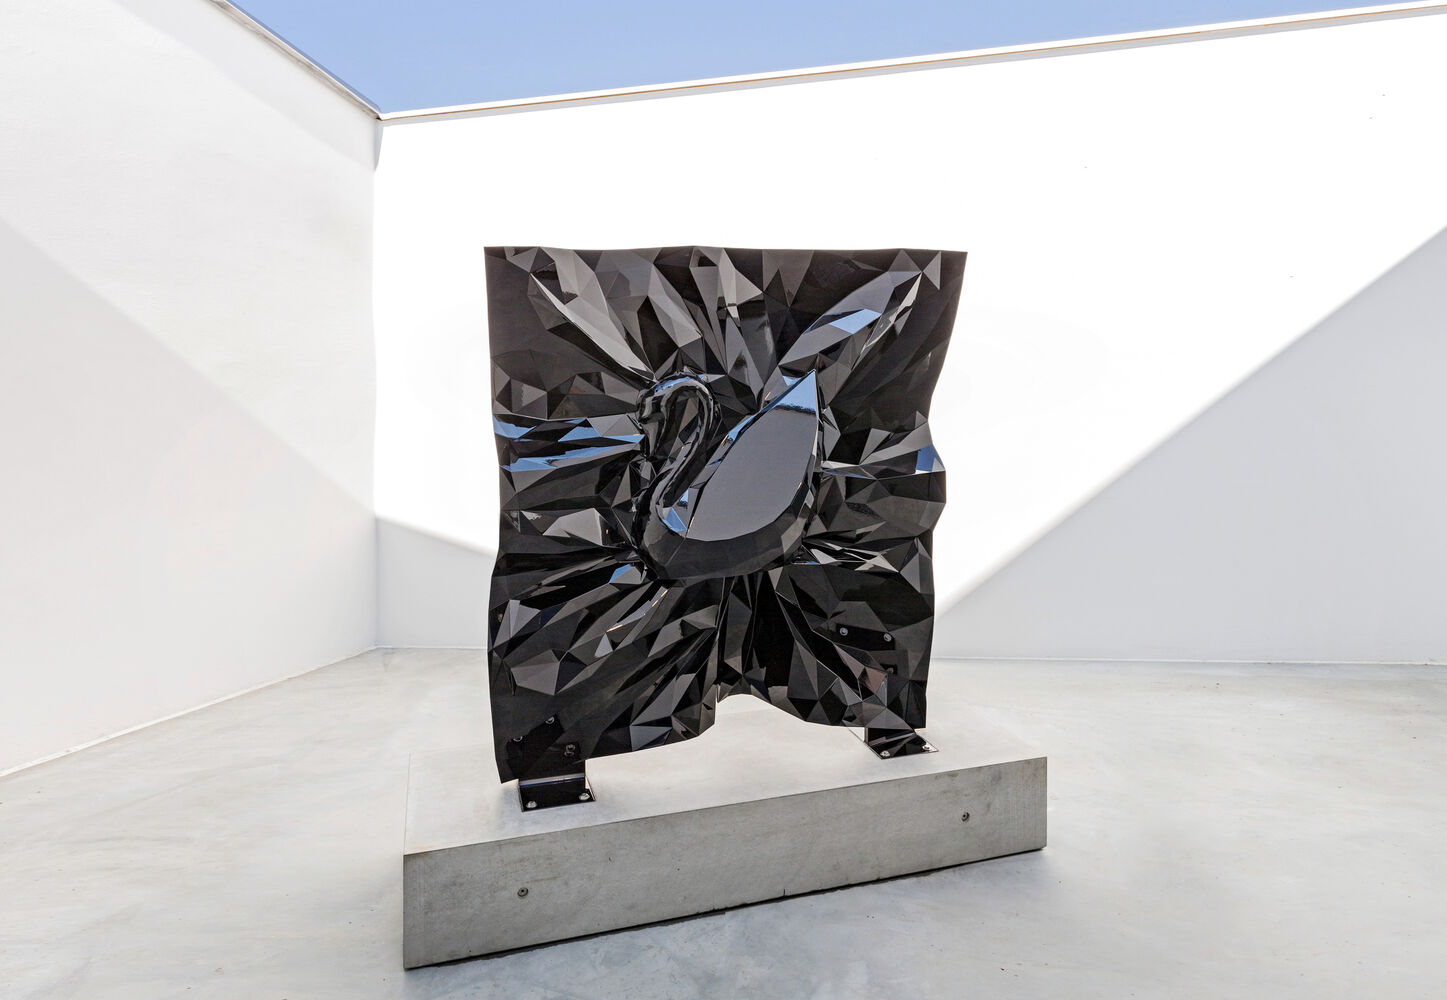 Vacuum packing luxury good Swarovski swan cnc milled aluminium black painted crystal facets polymesh by artist Nikolai Winter